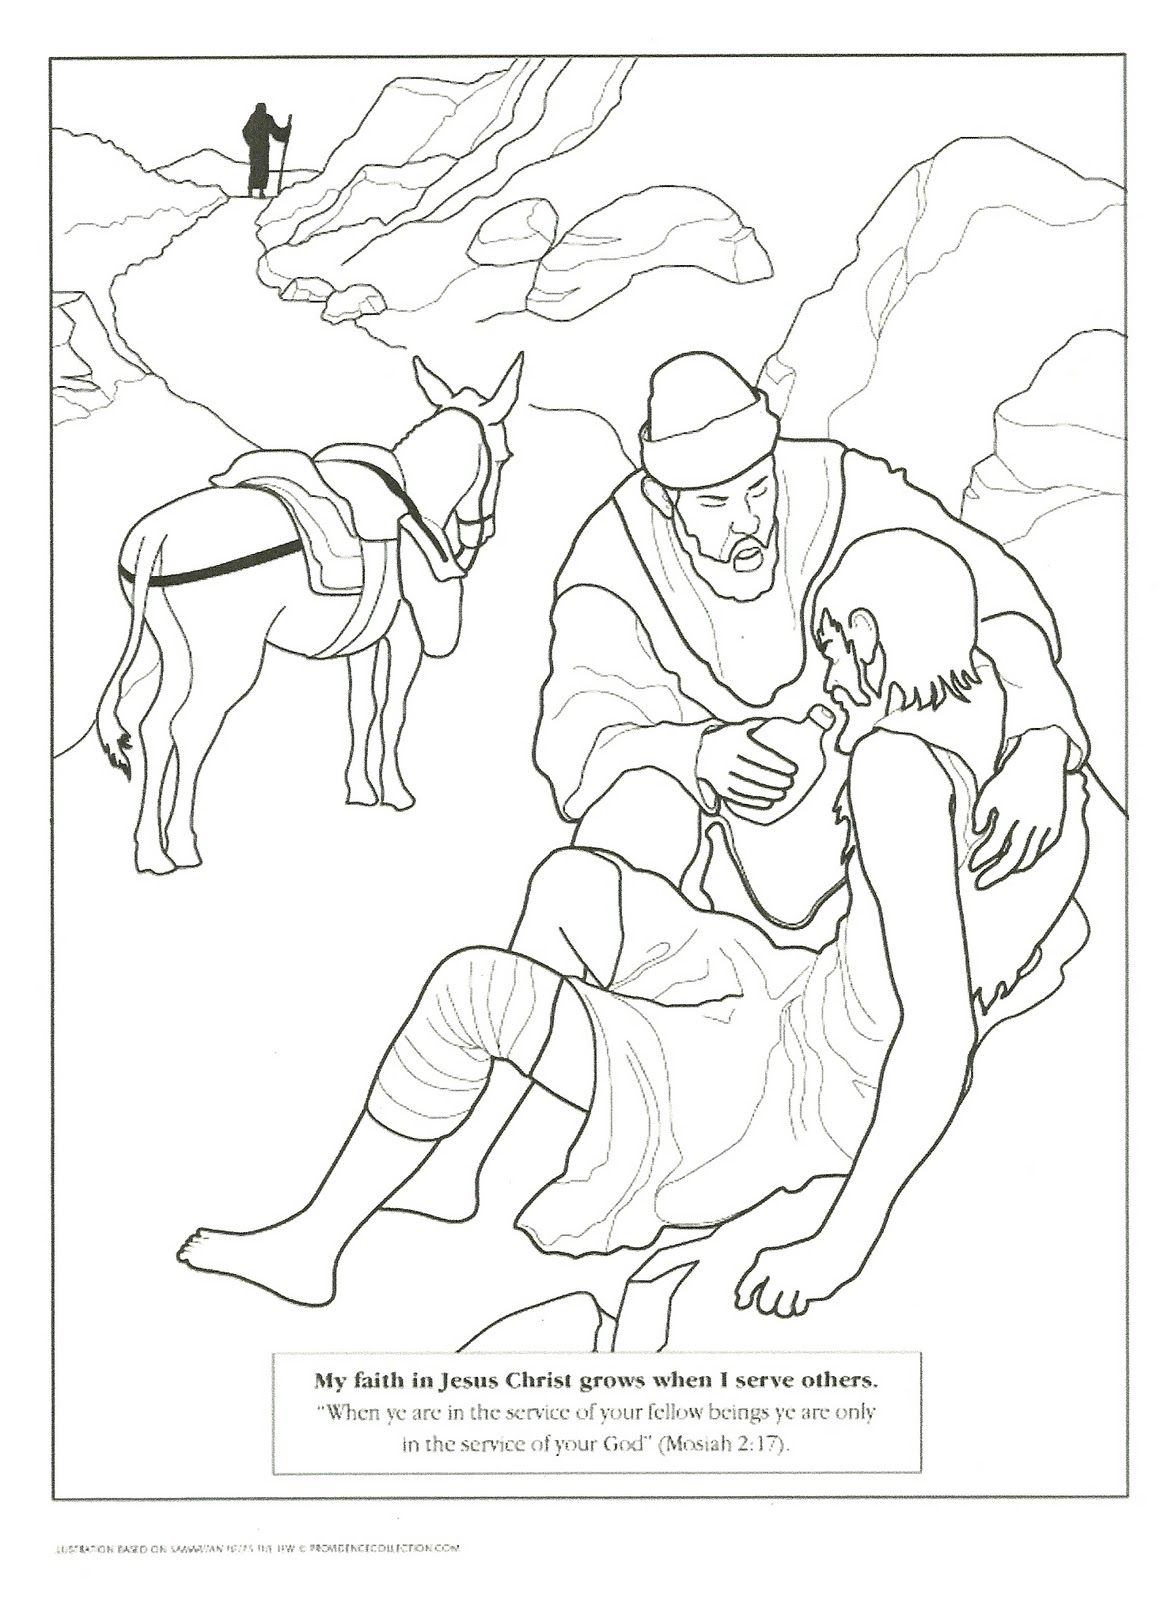 Primary 3 Manual Lesson 37 I'll Serve Jesus Christ by